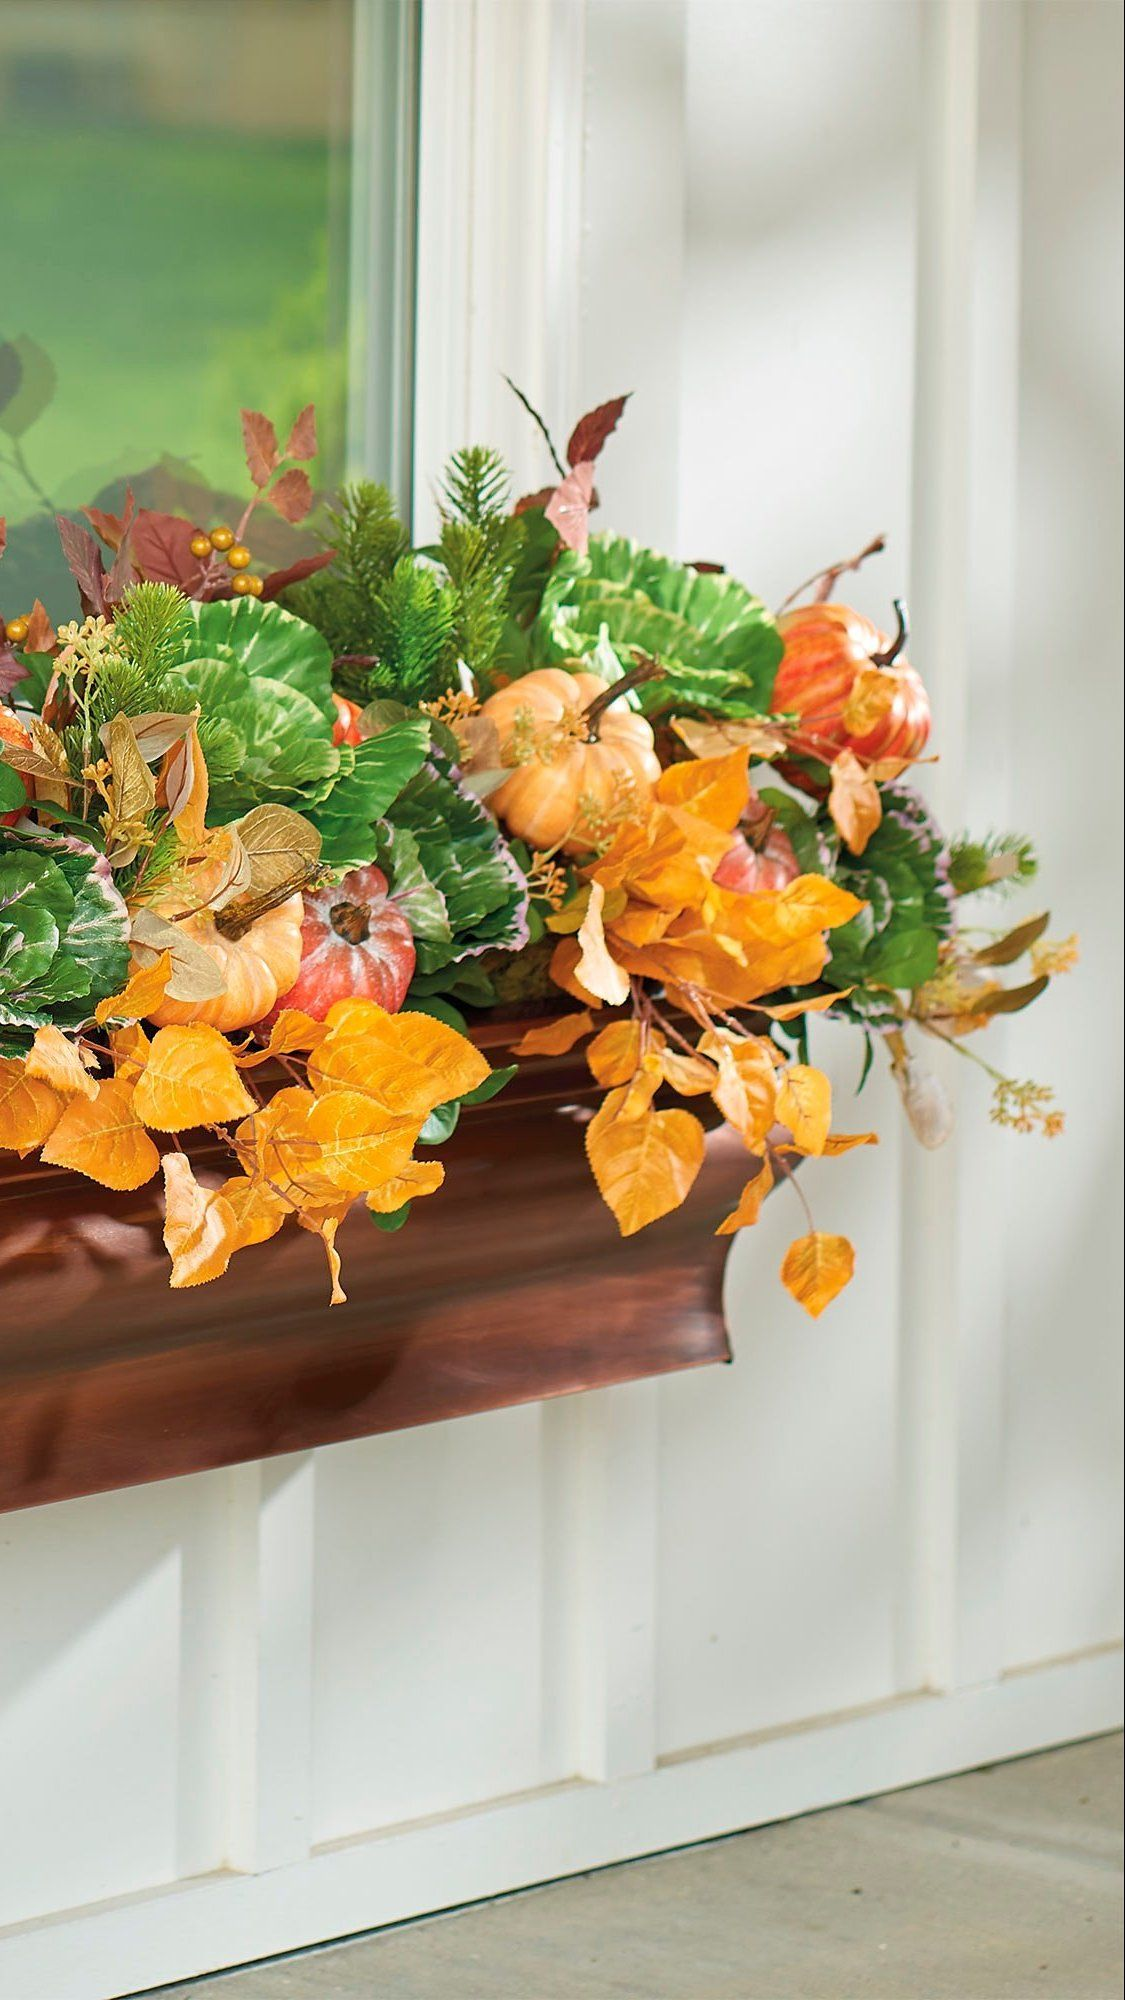 Ensure Your Window Bo Are Always Overflowing With An Abundance Of Beautiful Greenery Using Our Everlasting